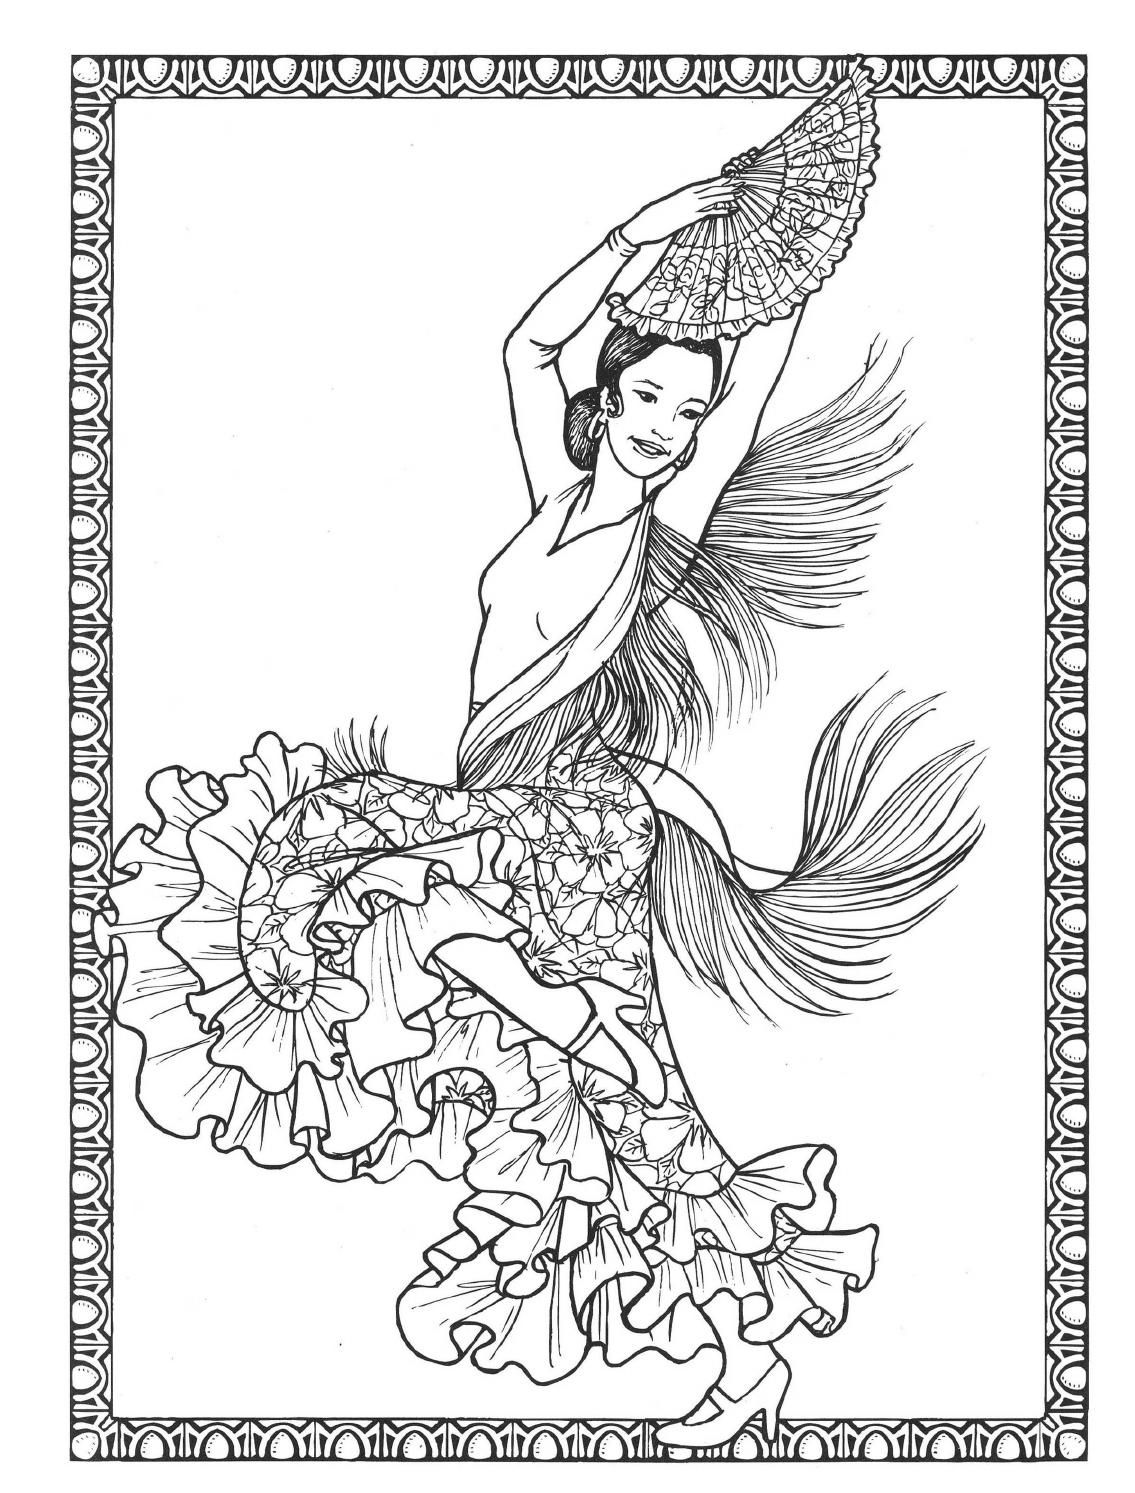 Dancers Coloring Book Costumes For Coloring Coloring Books Book Costumes Coloring Pages